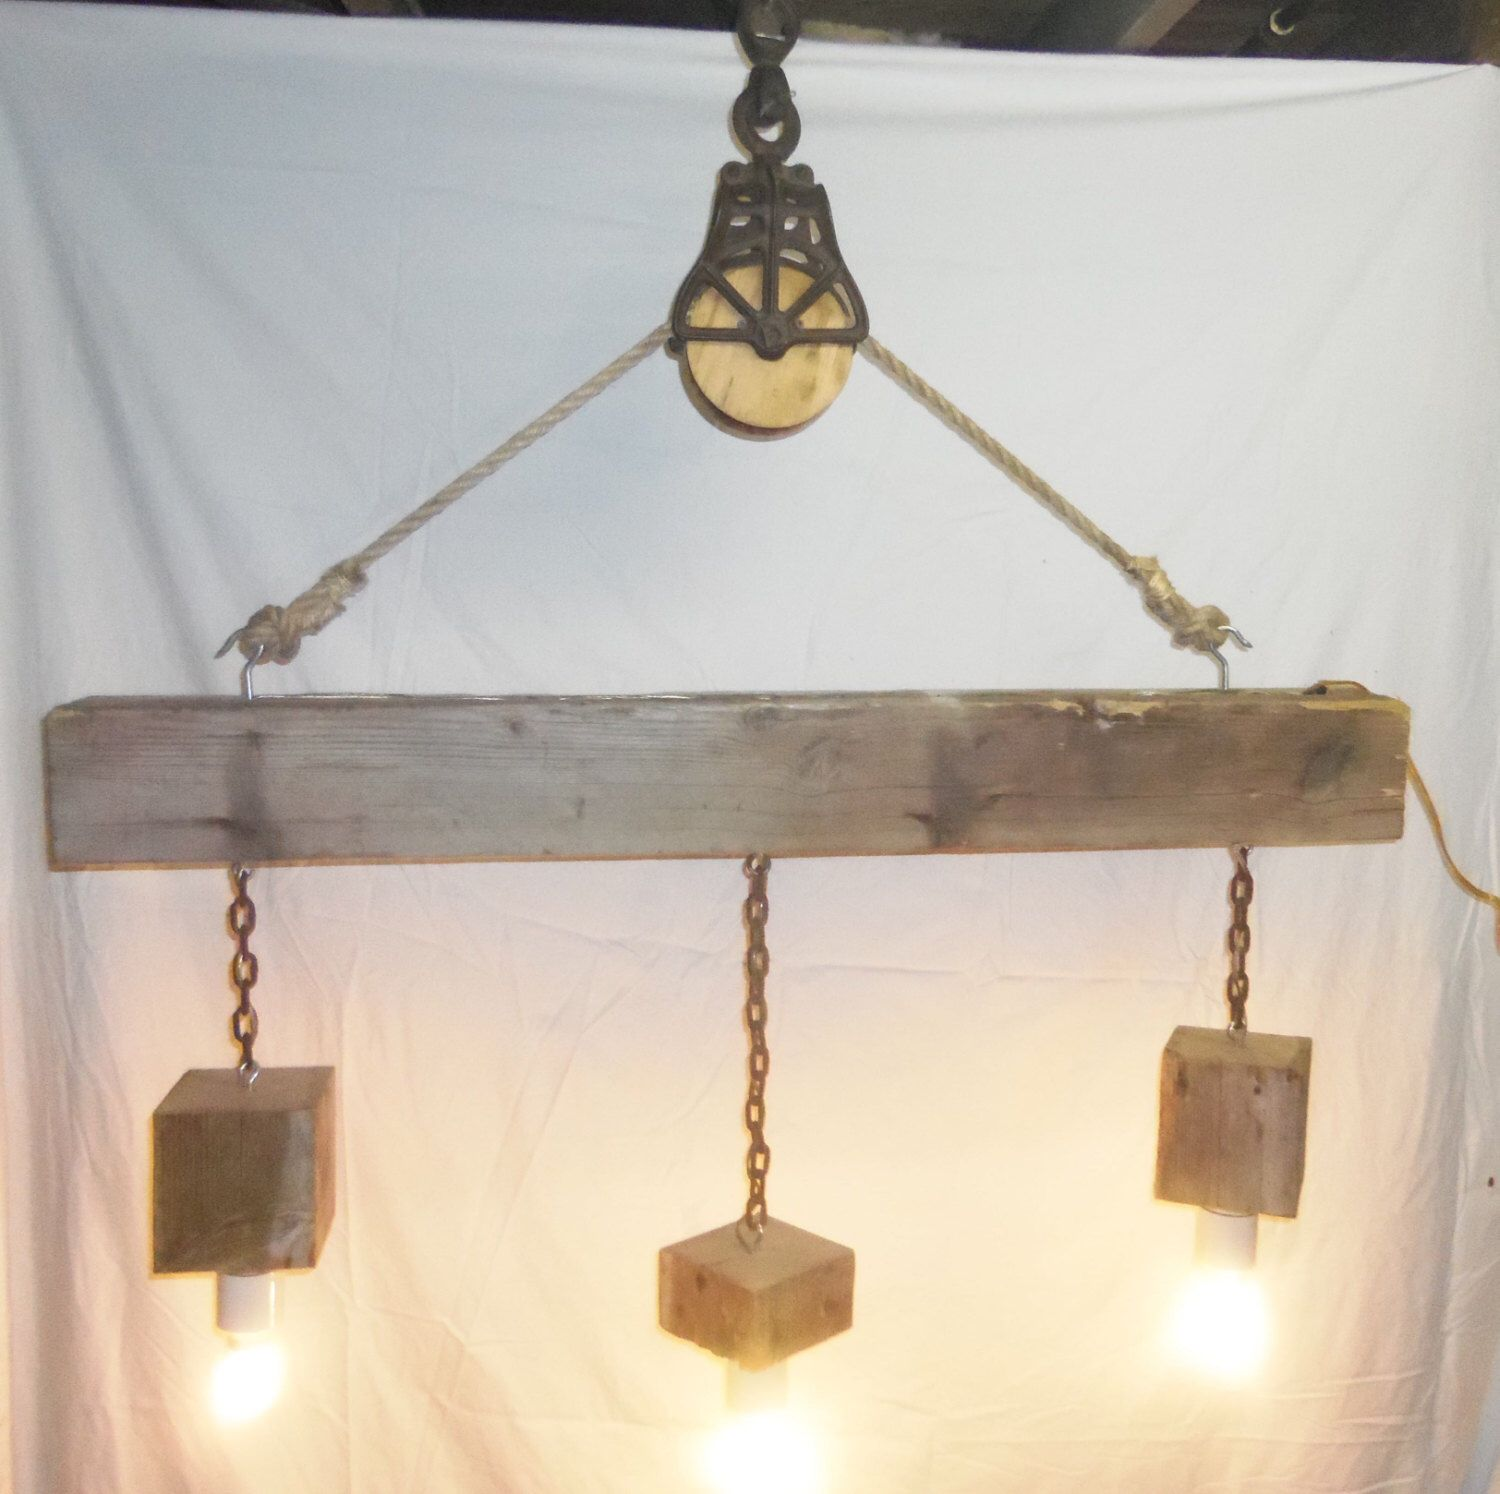 Reclaimed Barn Beam and Pulley 3 Light Chandelier by